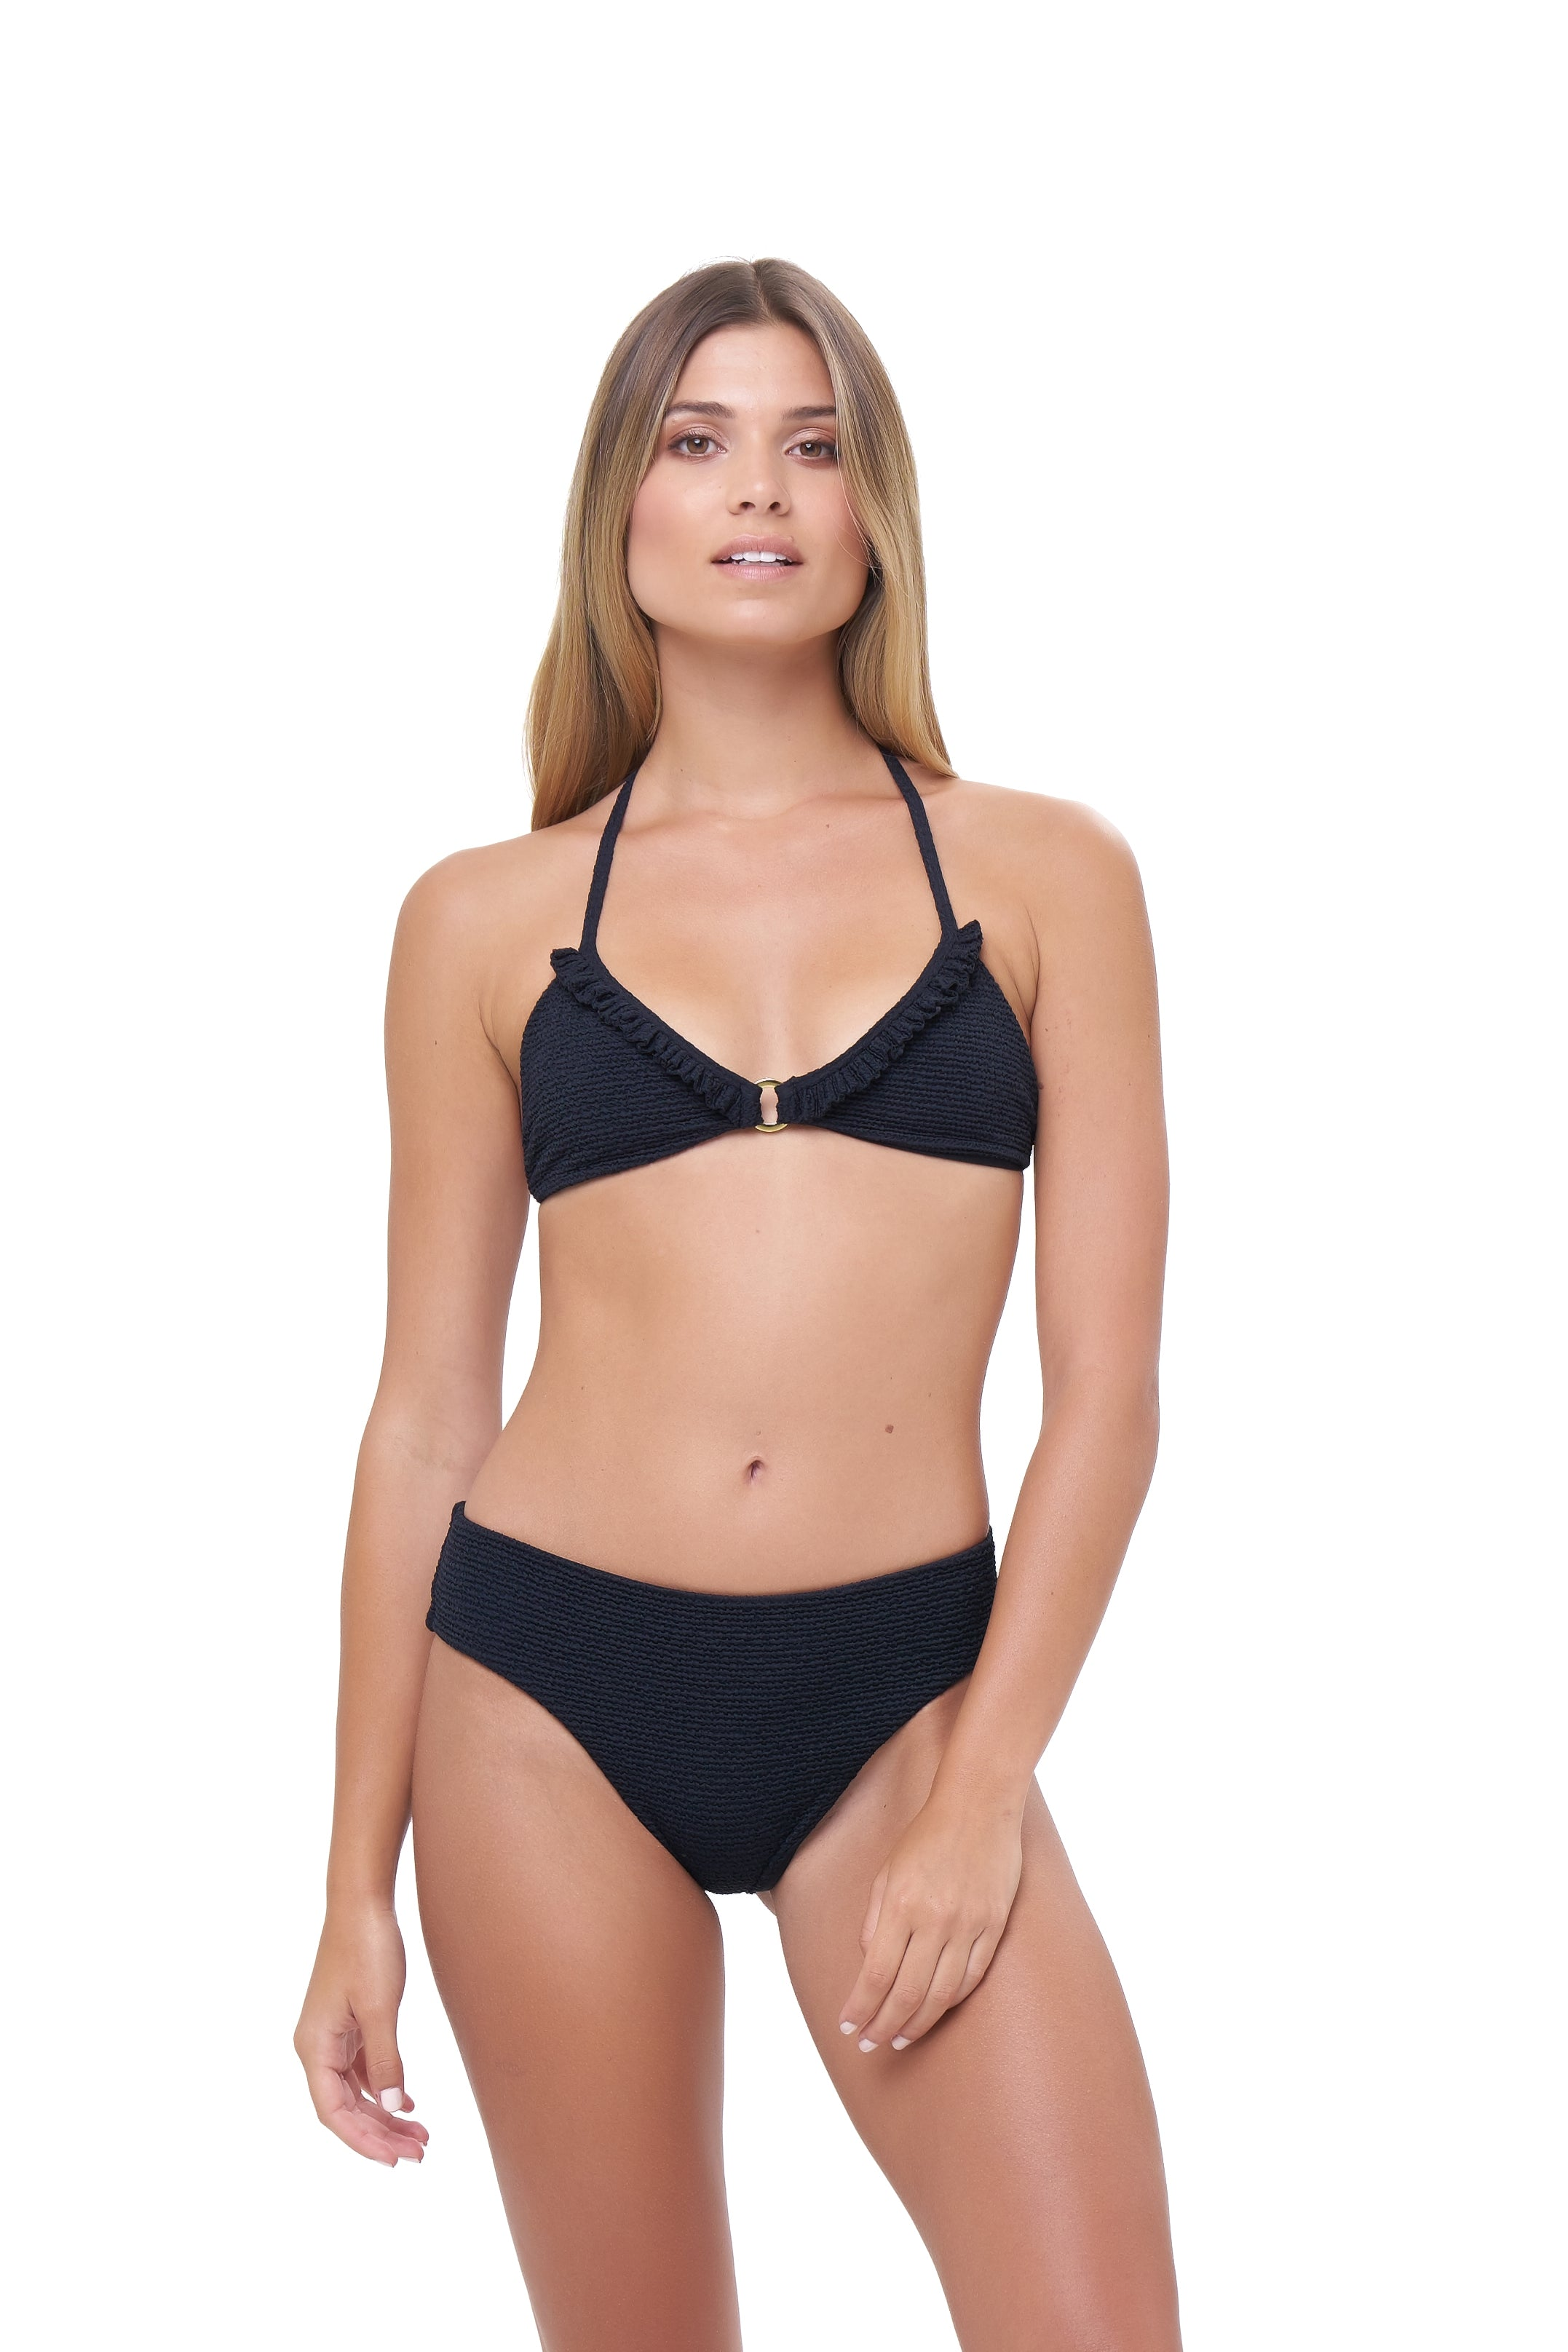 Storm Swimwear - Isola Bella  - Bikini Top in Storm Le Nuage Noir